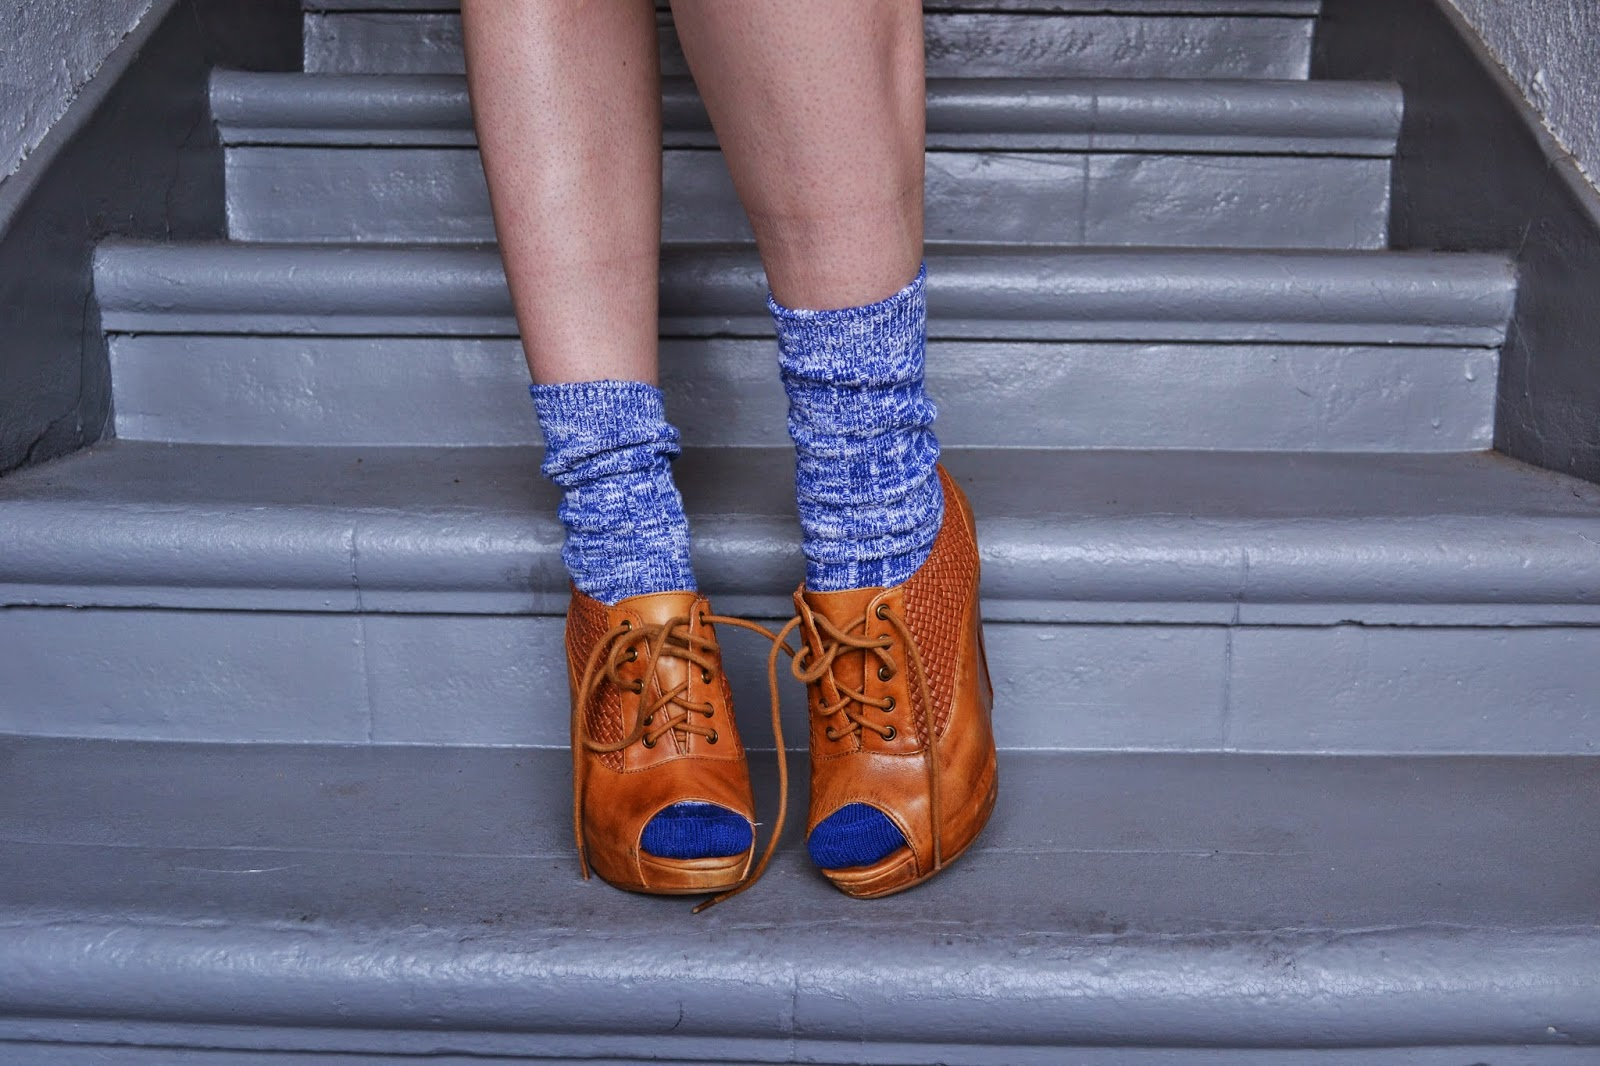 marled, cobalt, peek-a-boo, casual style, shoes, socks, fashion, budget